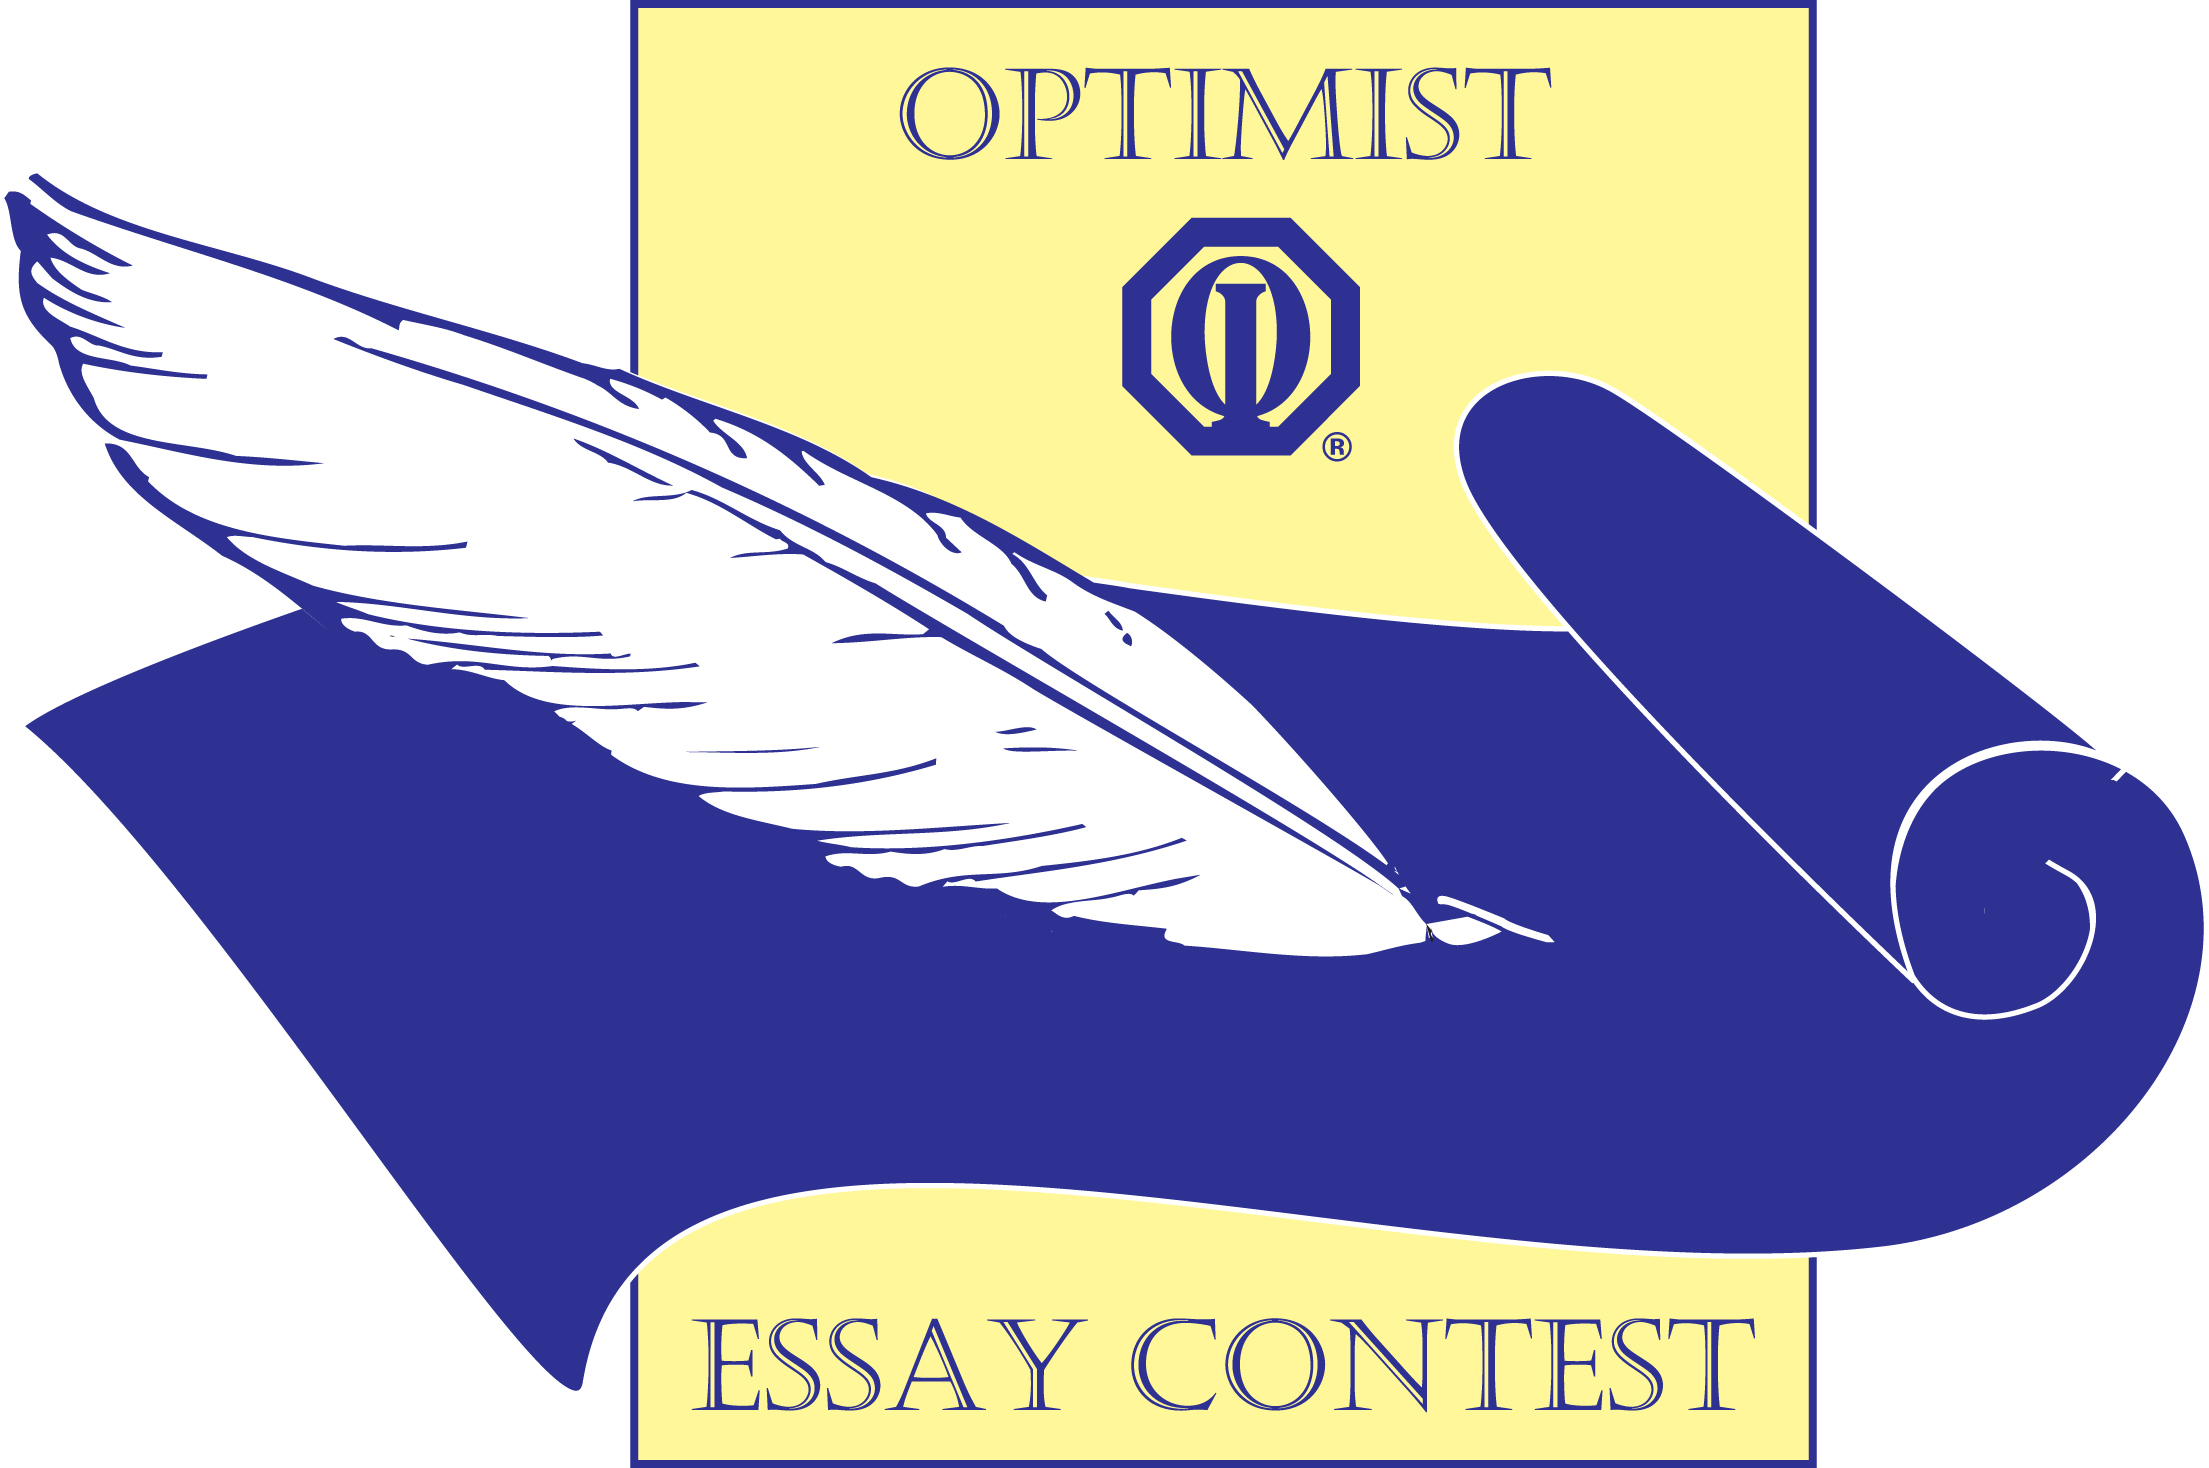 essay contest fairbury optimist club essay contest